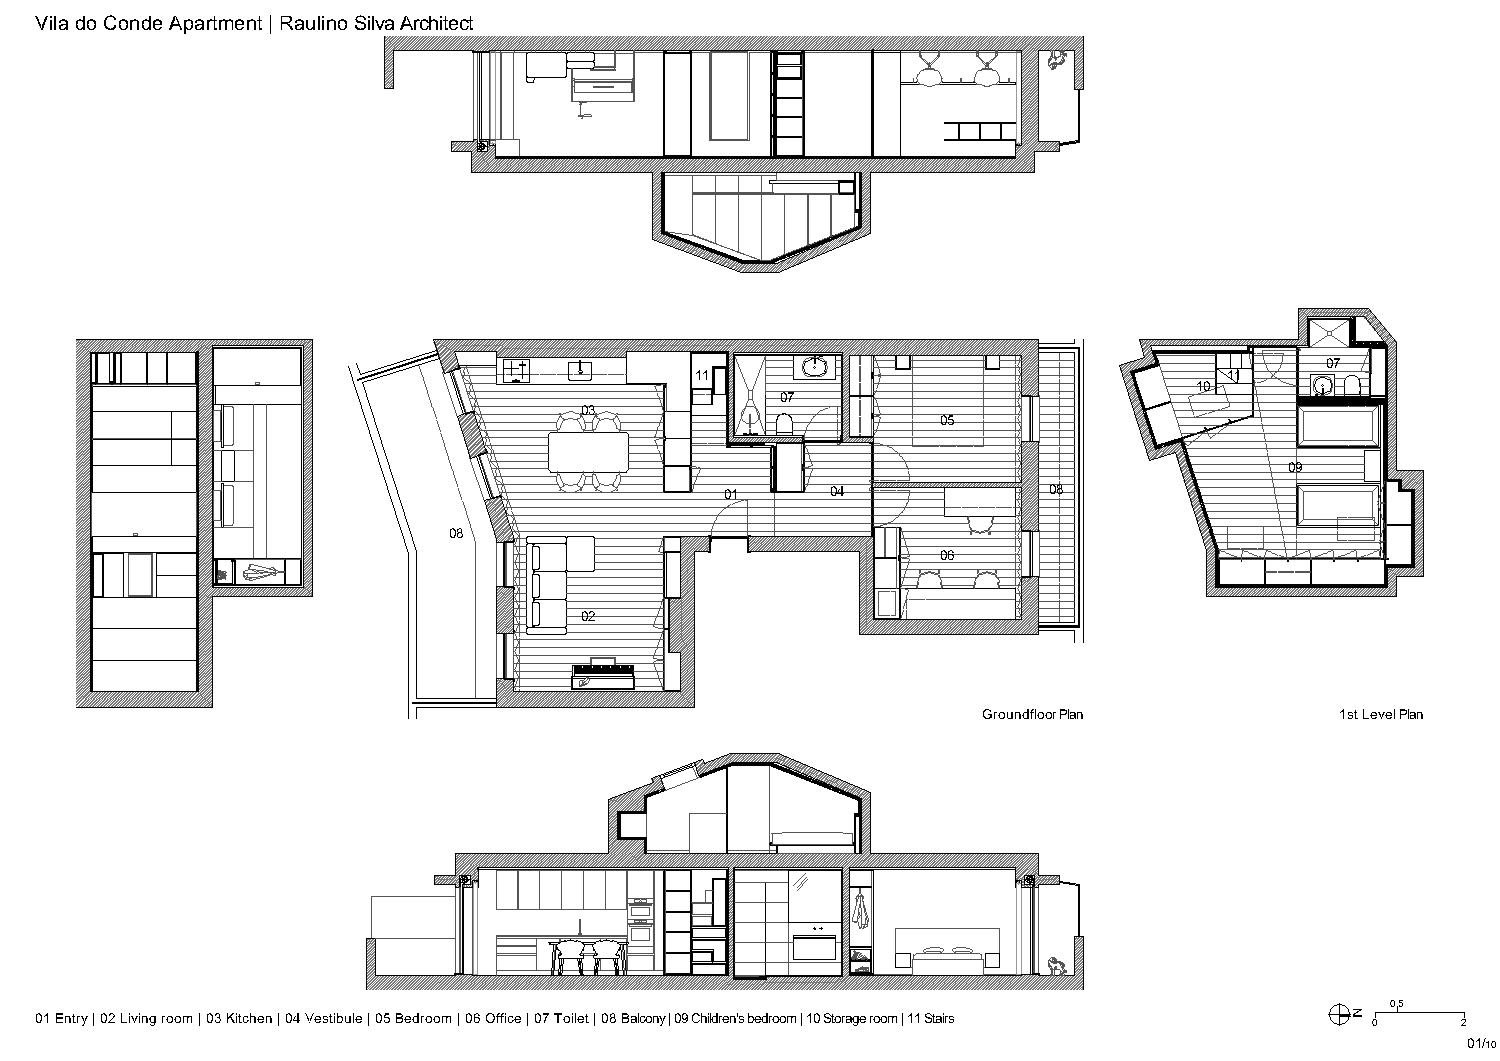 Plans ans sections Raulino Silva Architect}